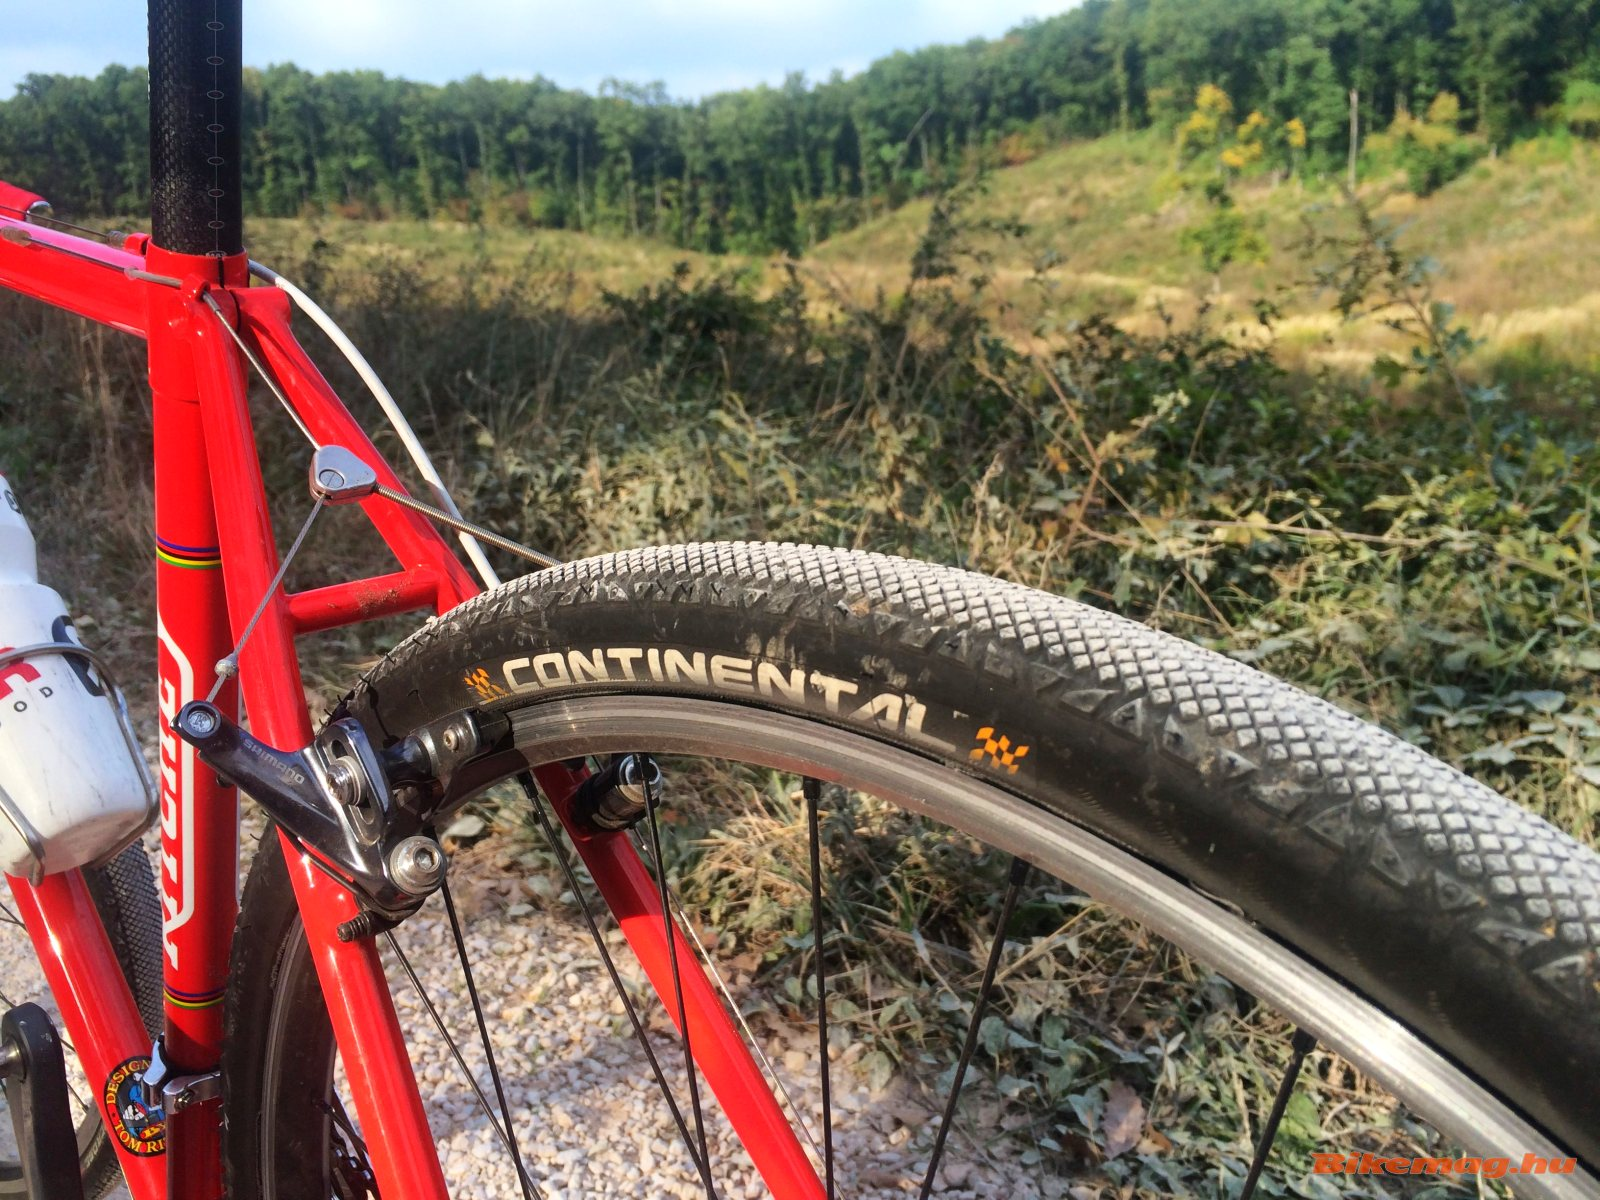 Continental_cyclocross_speed_1